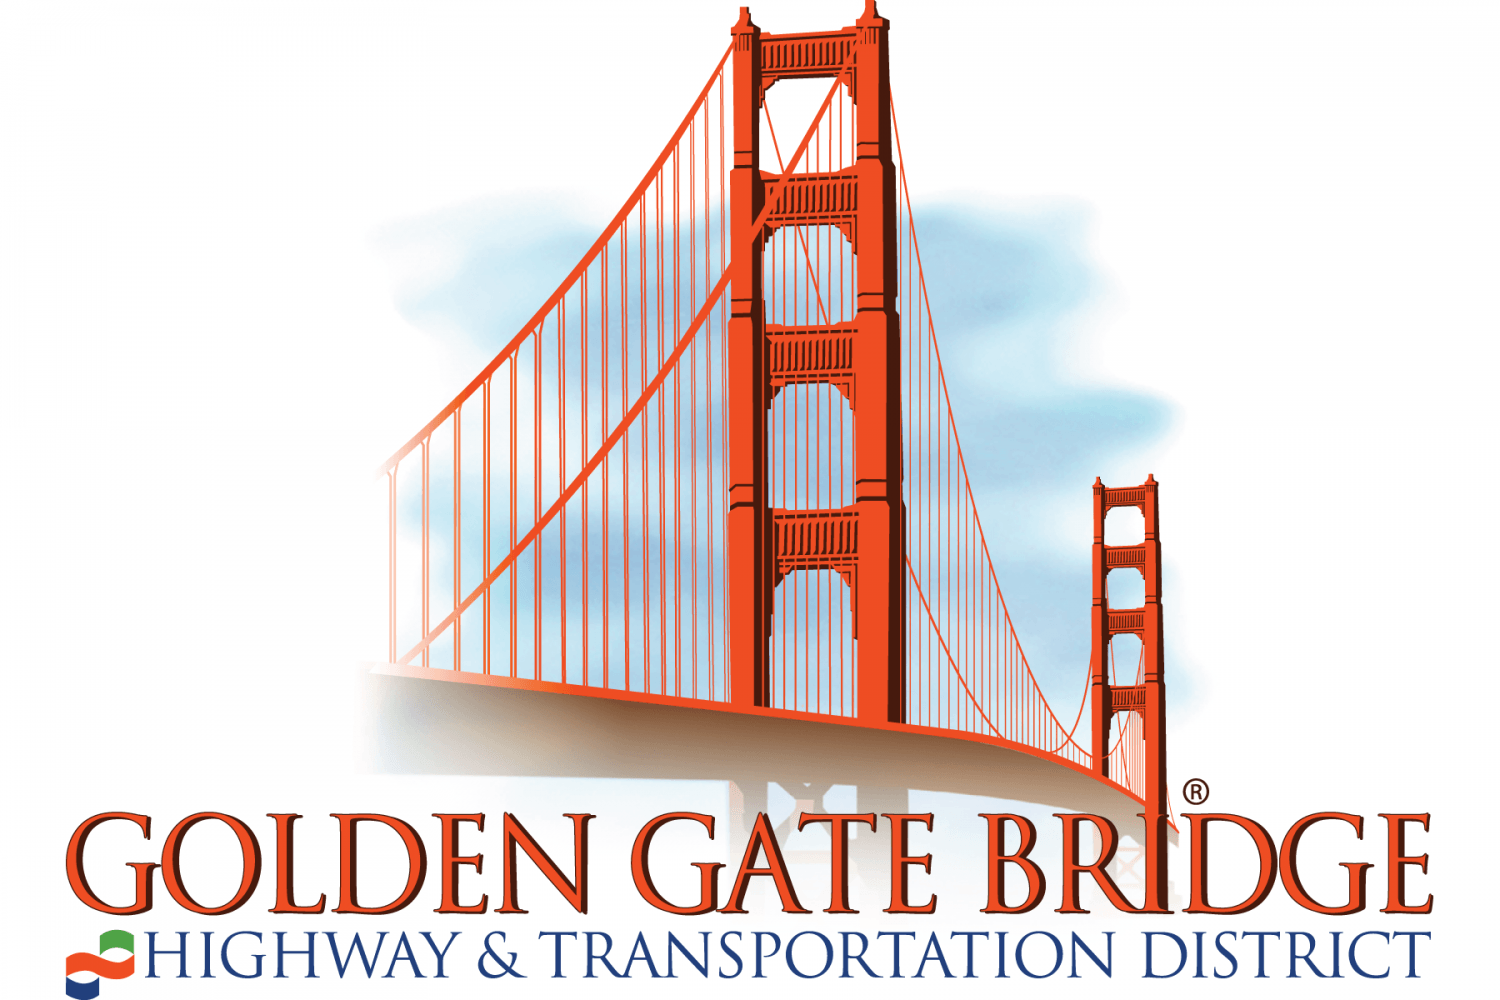 Golden Gate Bridge, Highway and Transportation District logo